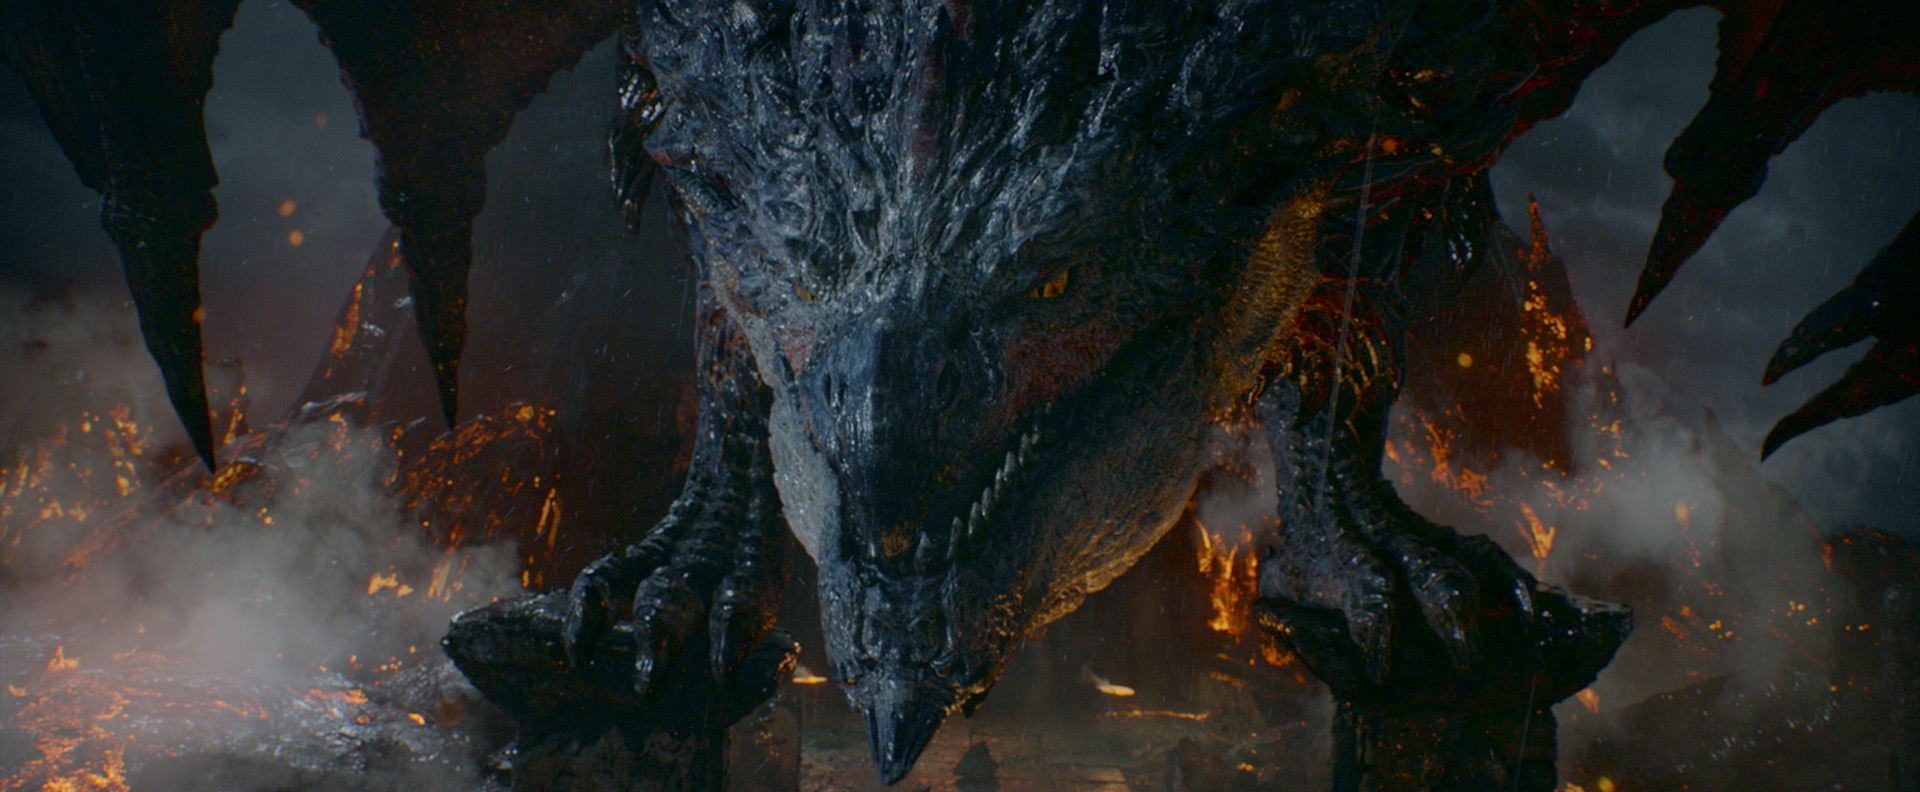 Rathalos from Screen Gems and Constantin Films MONSTER HUNTER.